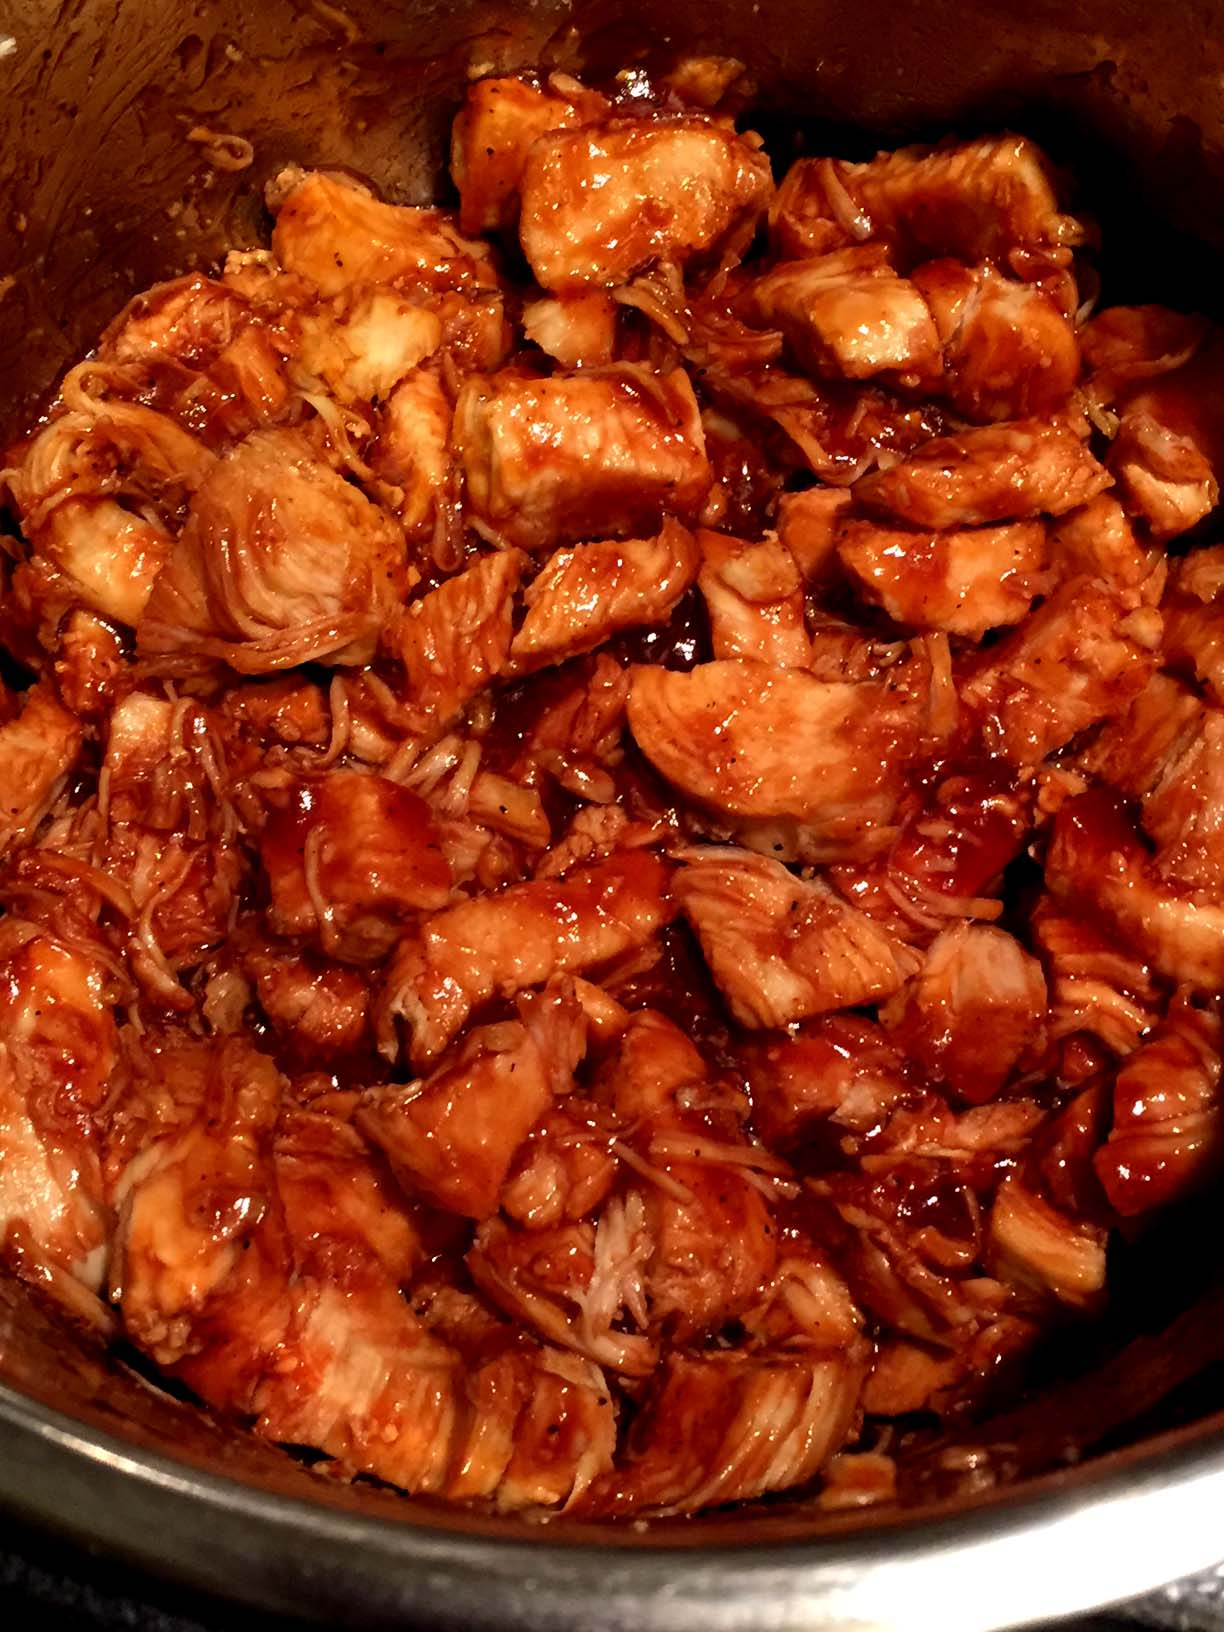 Jan 11, · You CAN cook a whole frozen chicken in the Instant Pot if your frozen chicken already has the innards/gizzards removed and has no plastic ties around the feet. You will not be able to remove a plastic insert or bag of gizzards from a frozen chicken. Therefore, you can not put a frozen chicken with either of those items into your pressure cooker/5(20).